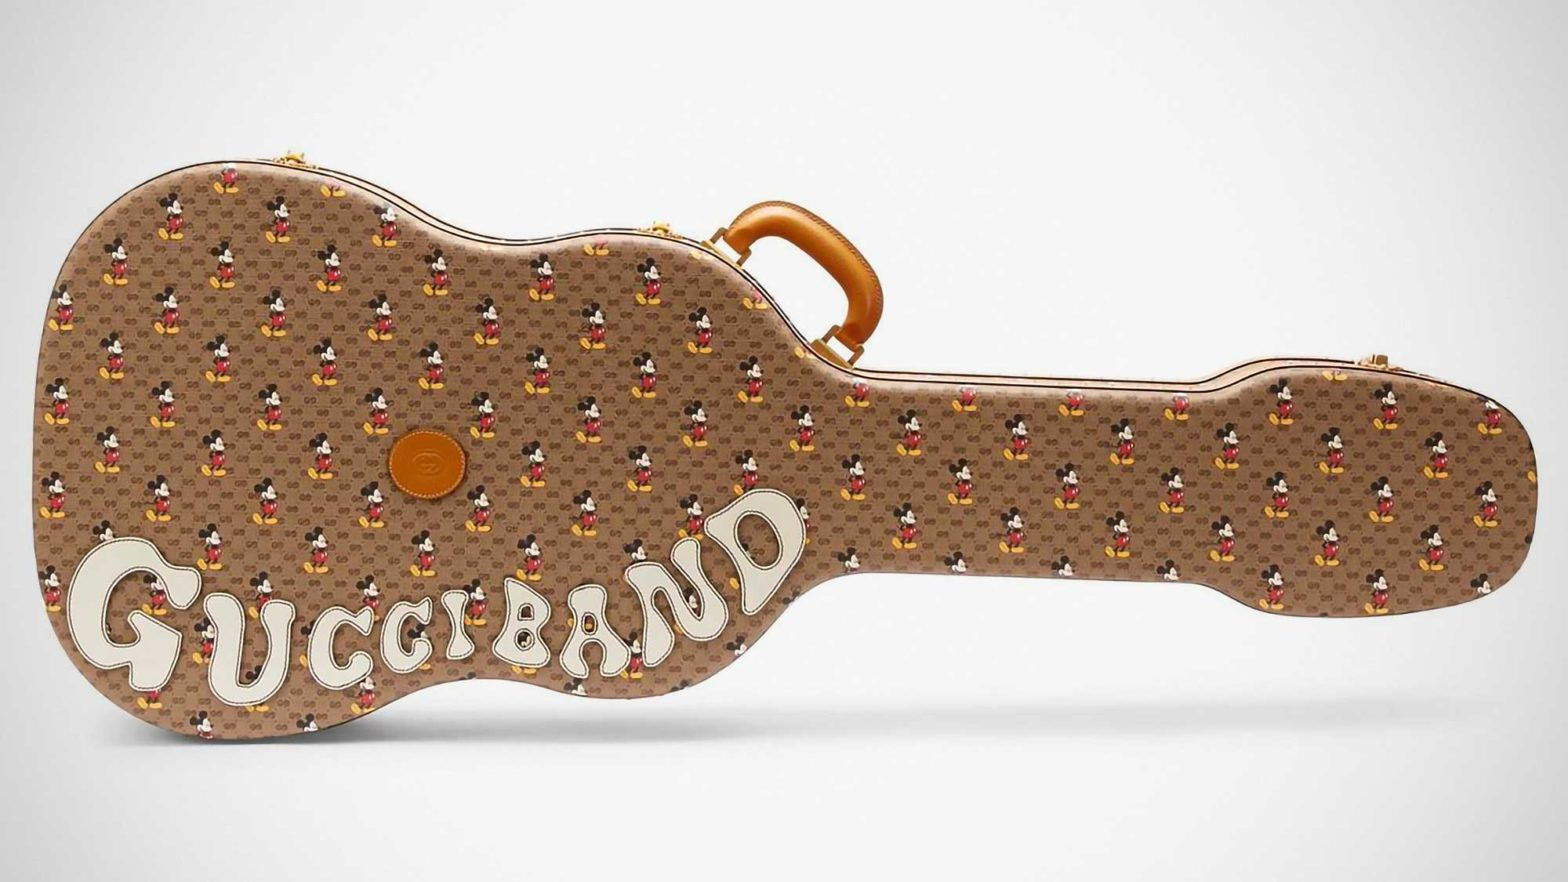 Gucci Mickey Mouse Guitar Case